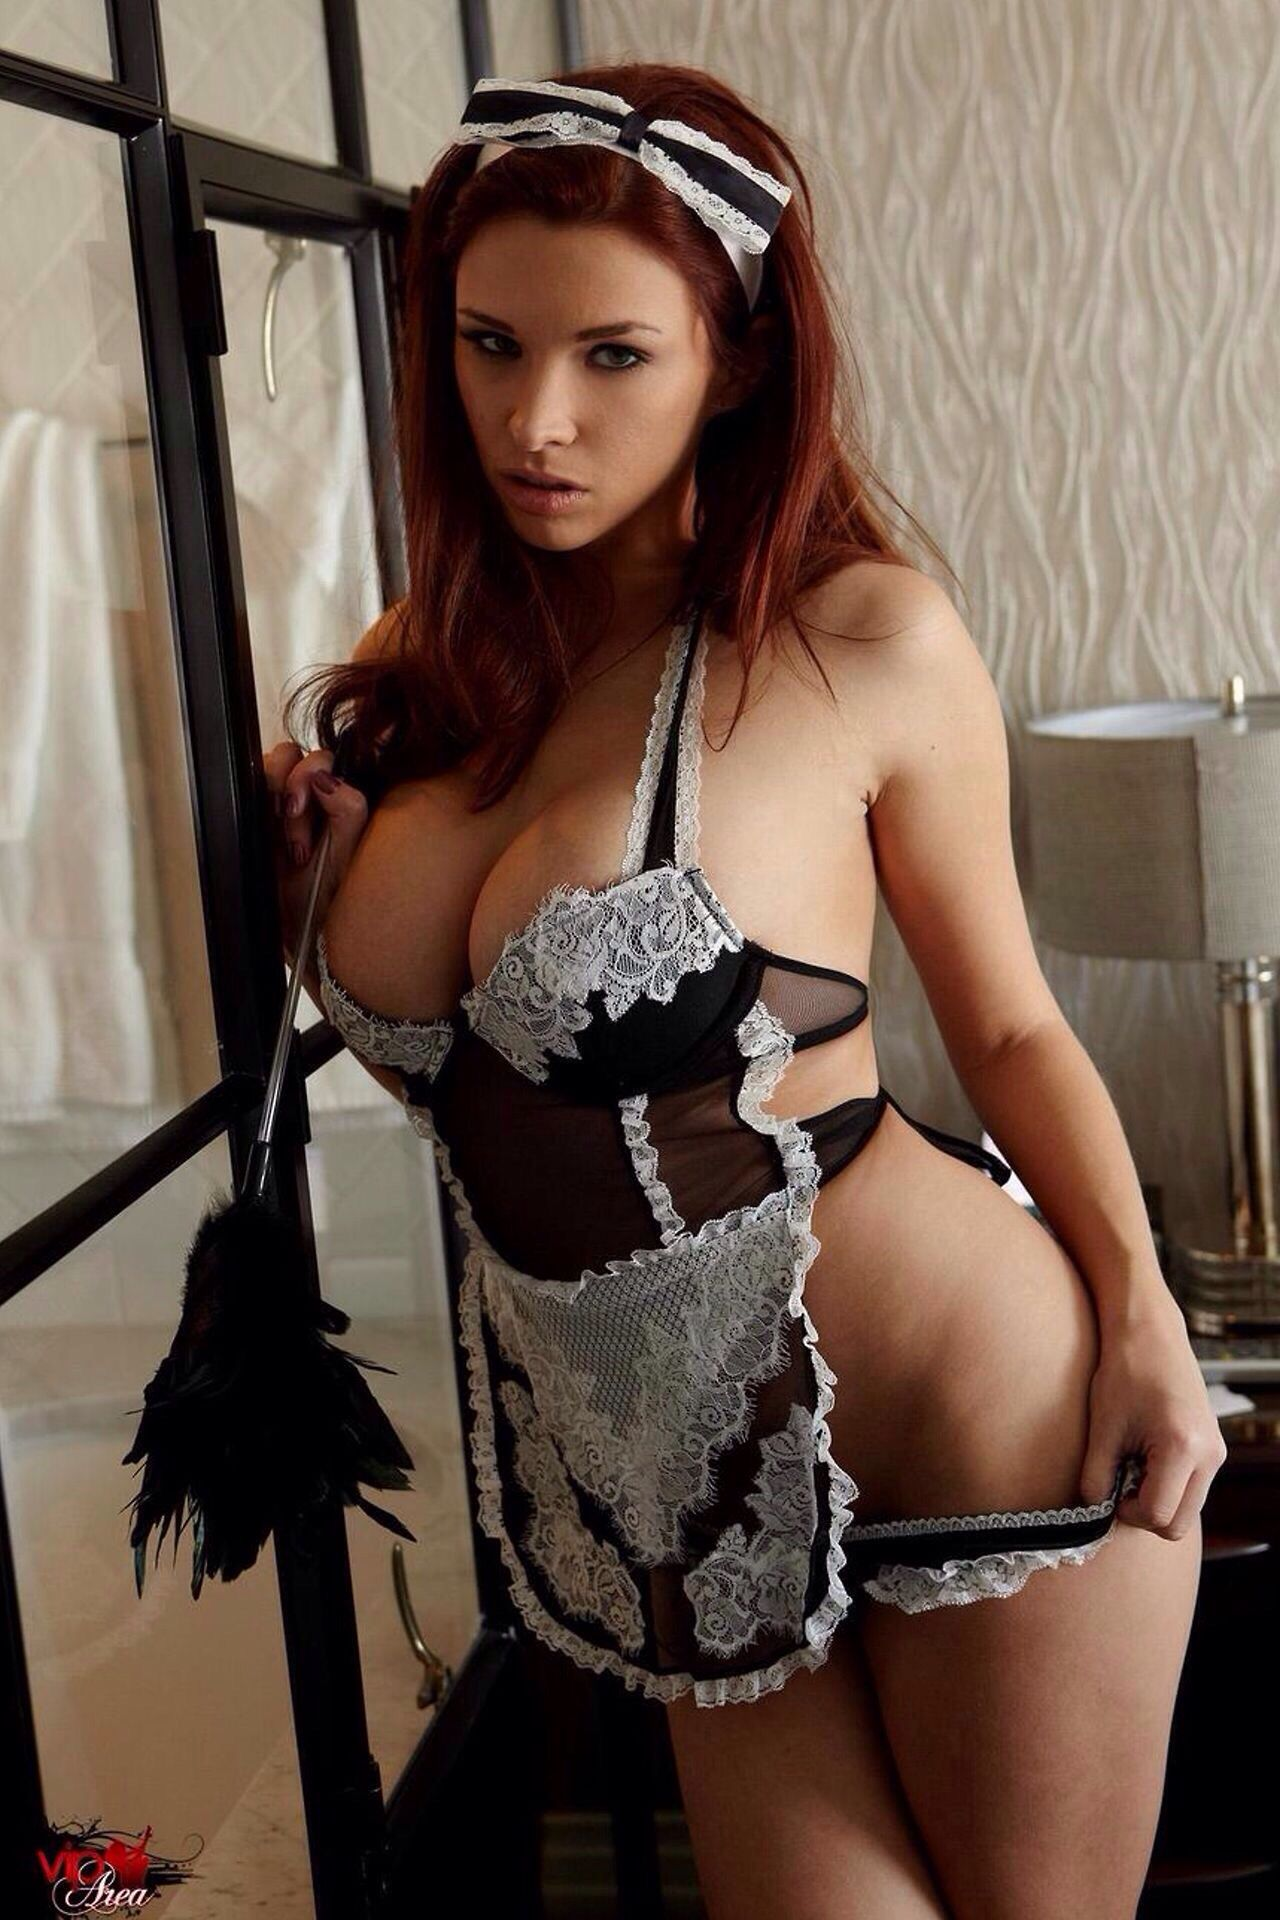 french maid nude lingerie